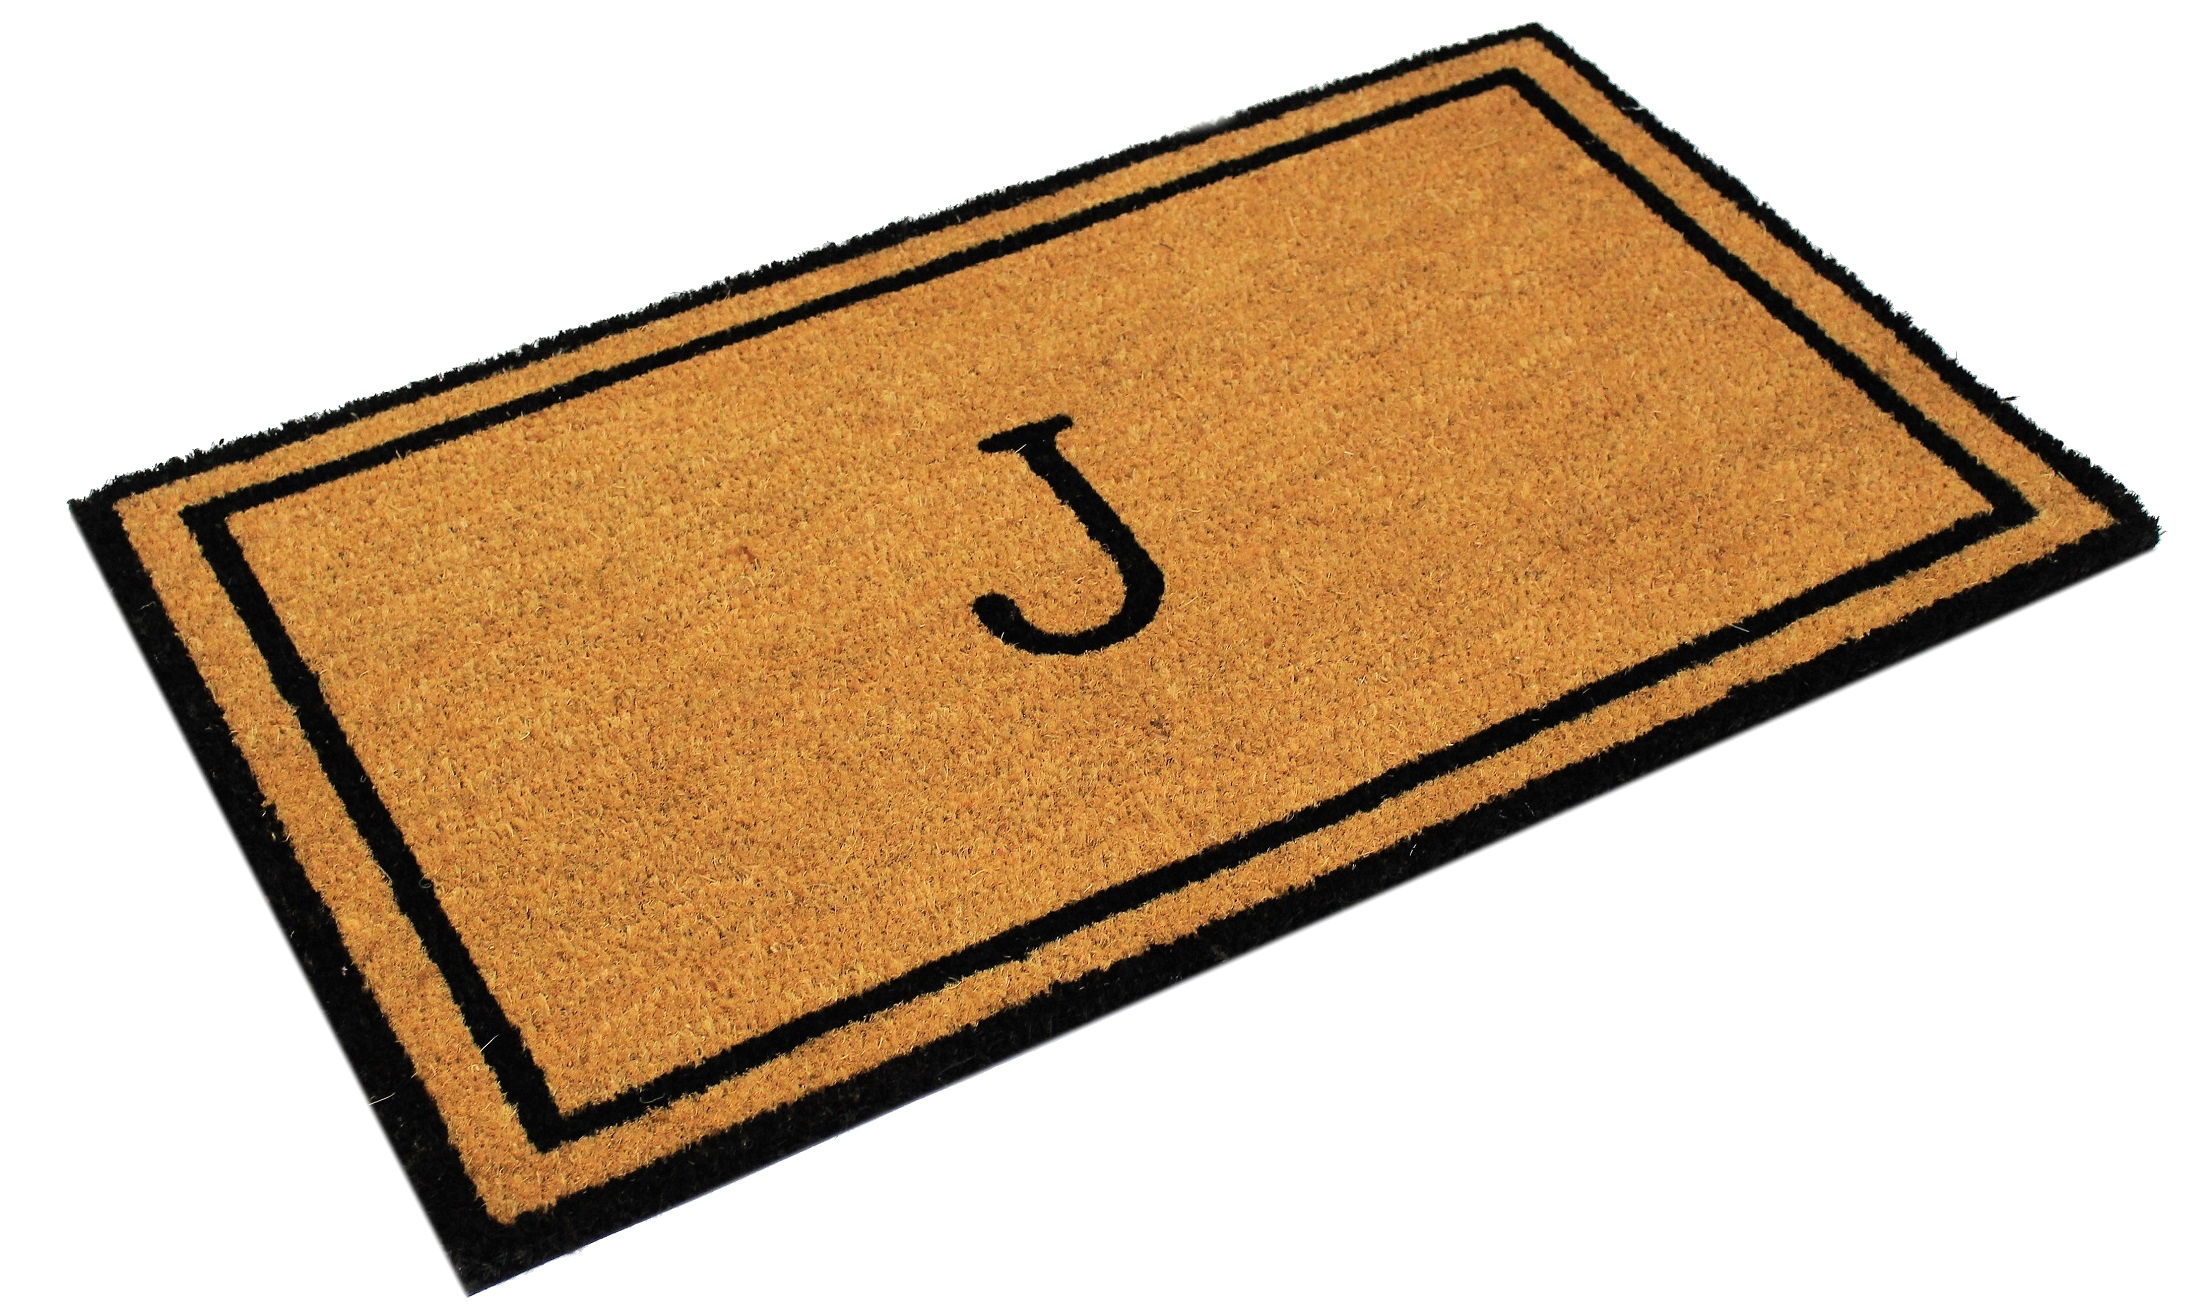 Envelor Home And Garden Customized Monogram J Coir Doormat Coco Welcome Mat  Outdoor Rugs Non Slip Outside Front Door Mat Personalized Monogrammed Shoe  ...